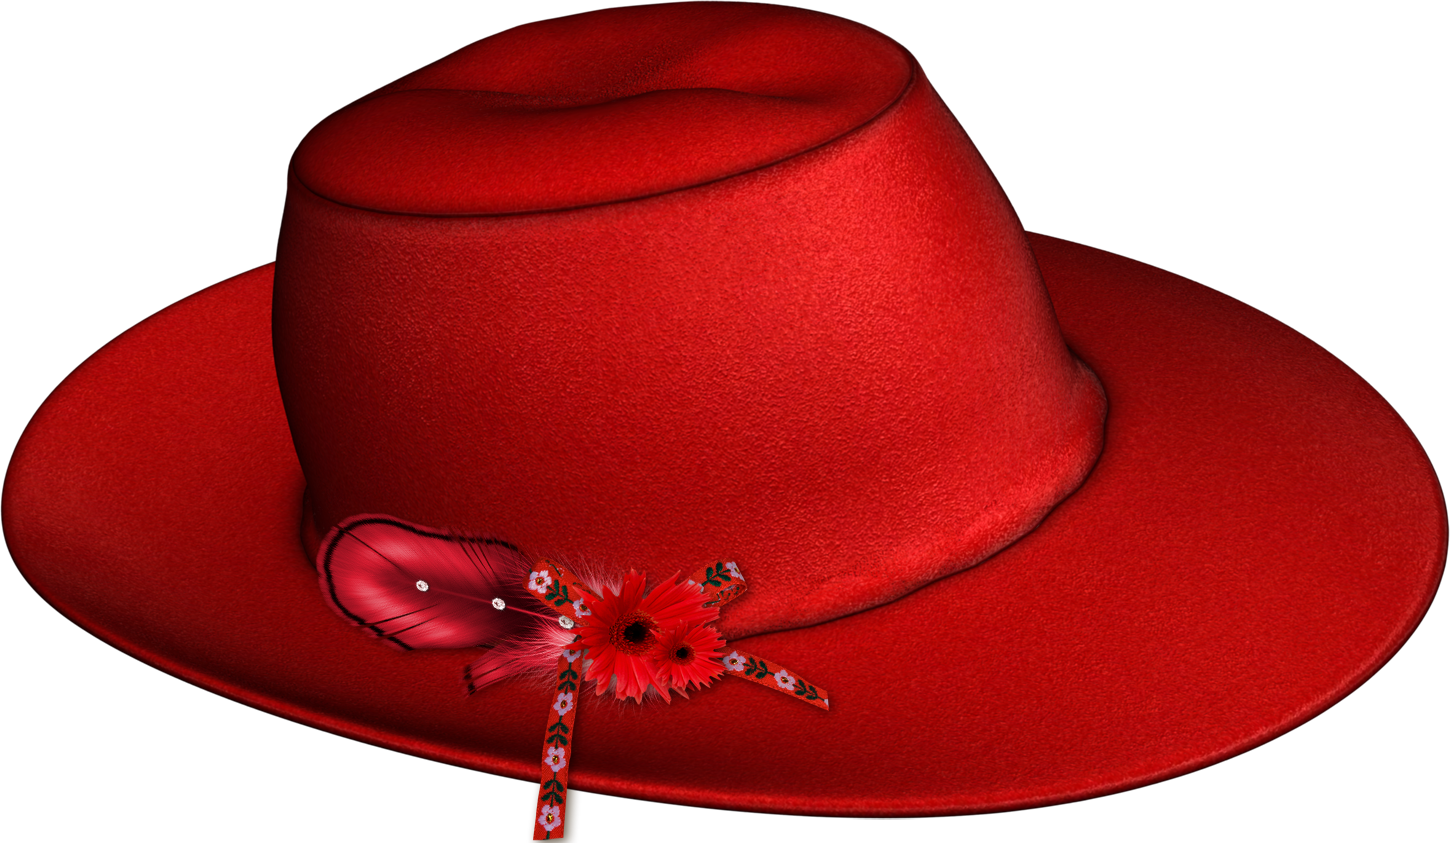 Free clipart sun hat banner library Red Hat PNG Image - PurePNG | Free transparent CC0 PNG Image Library banner library